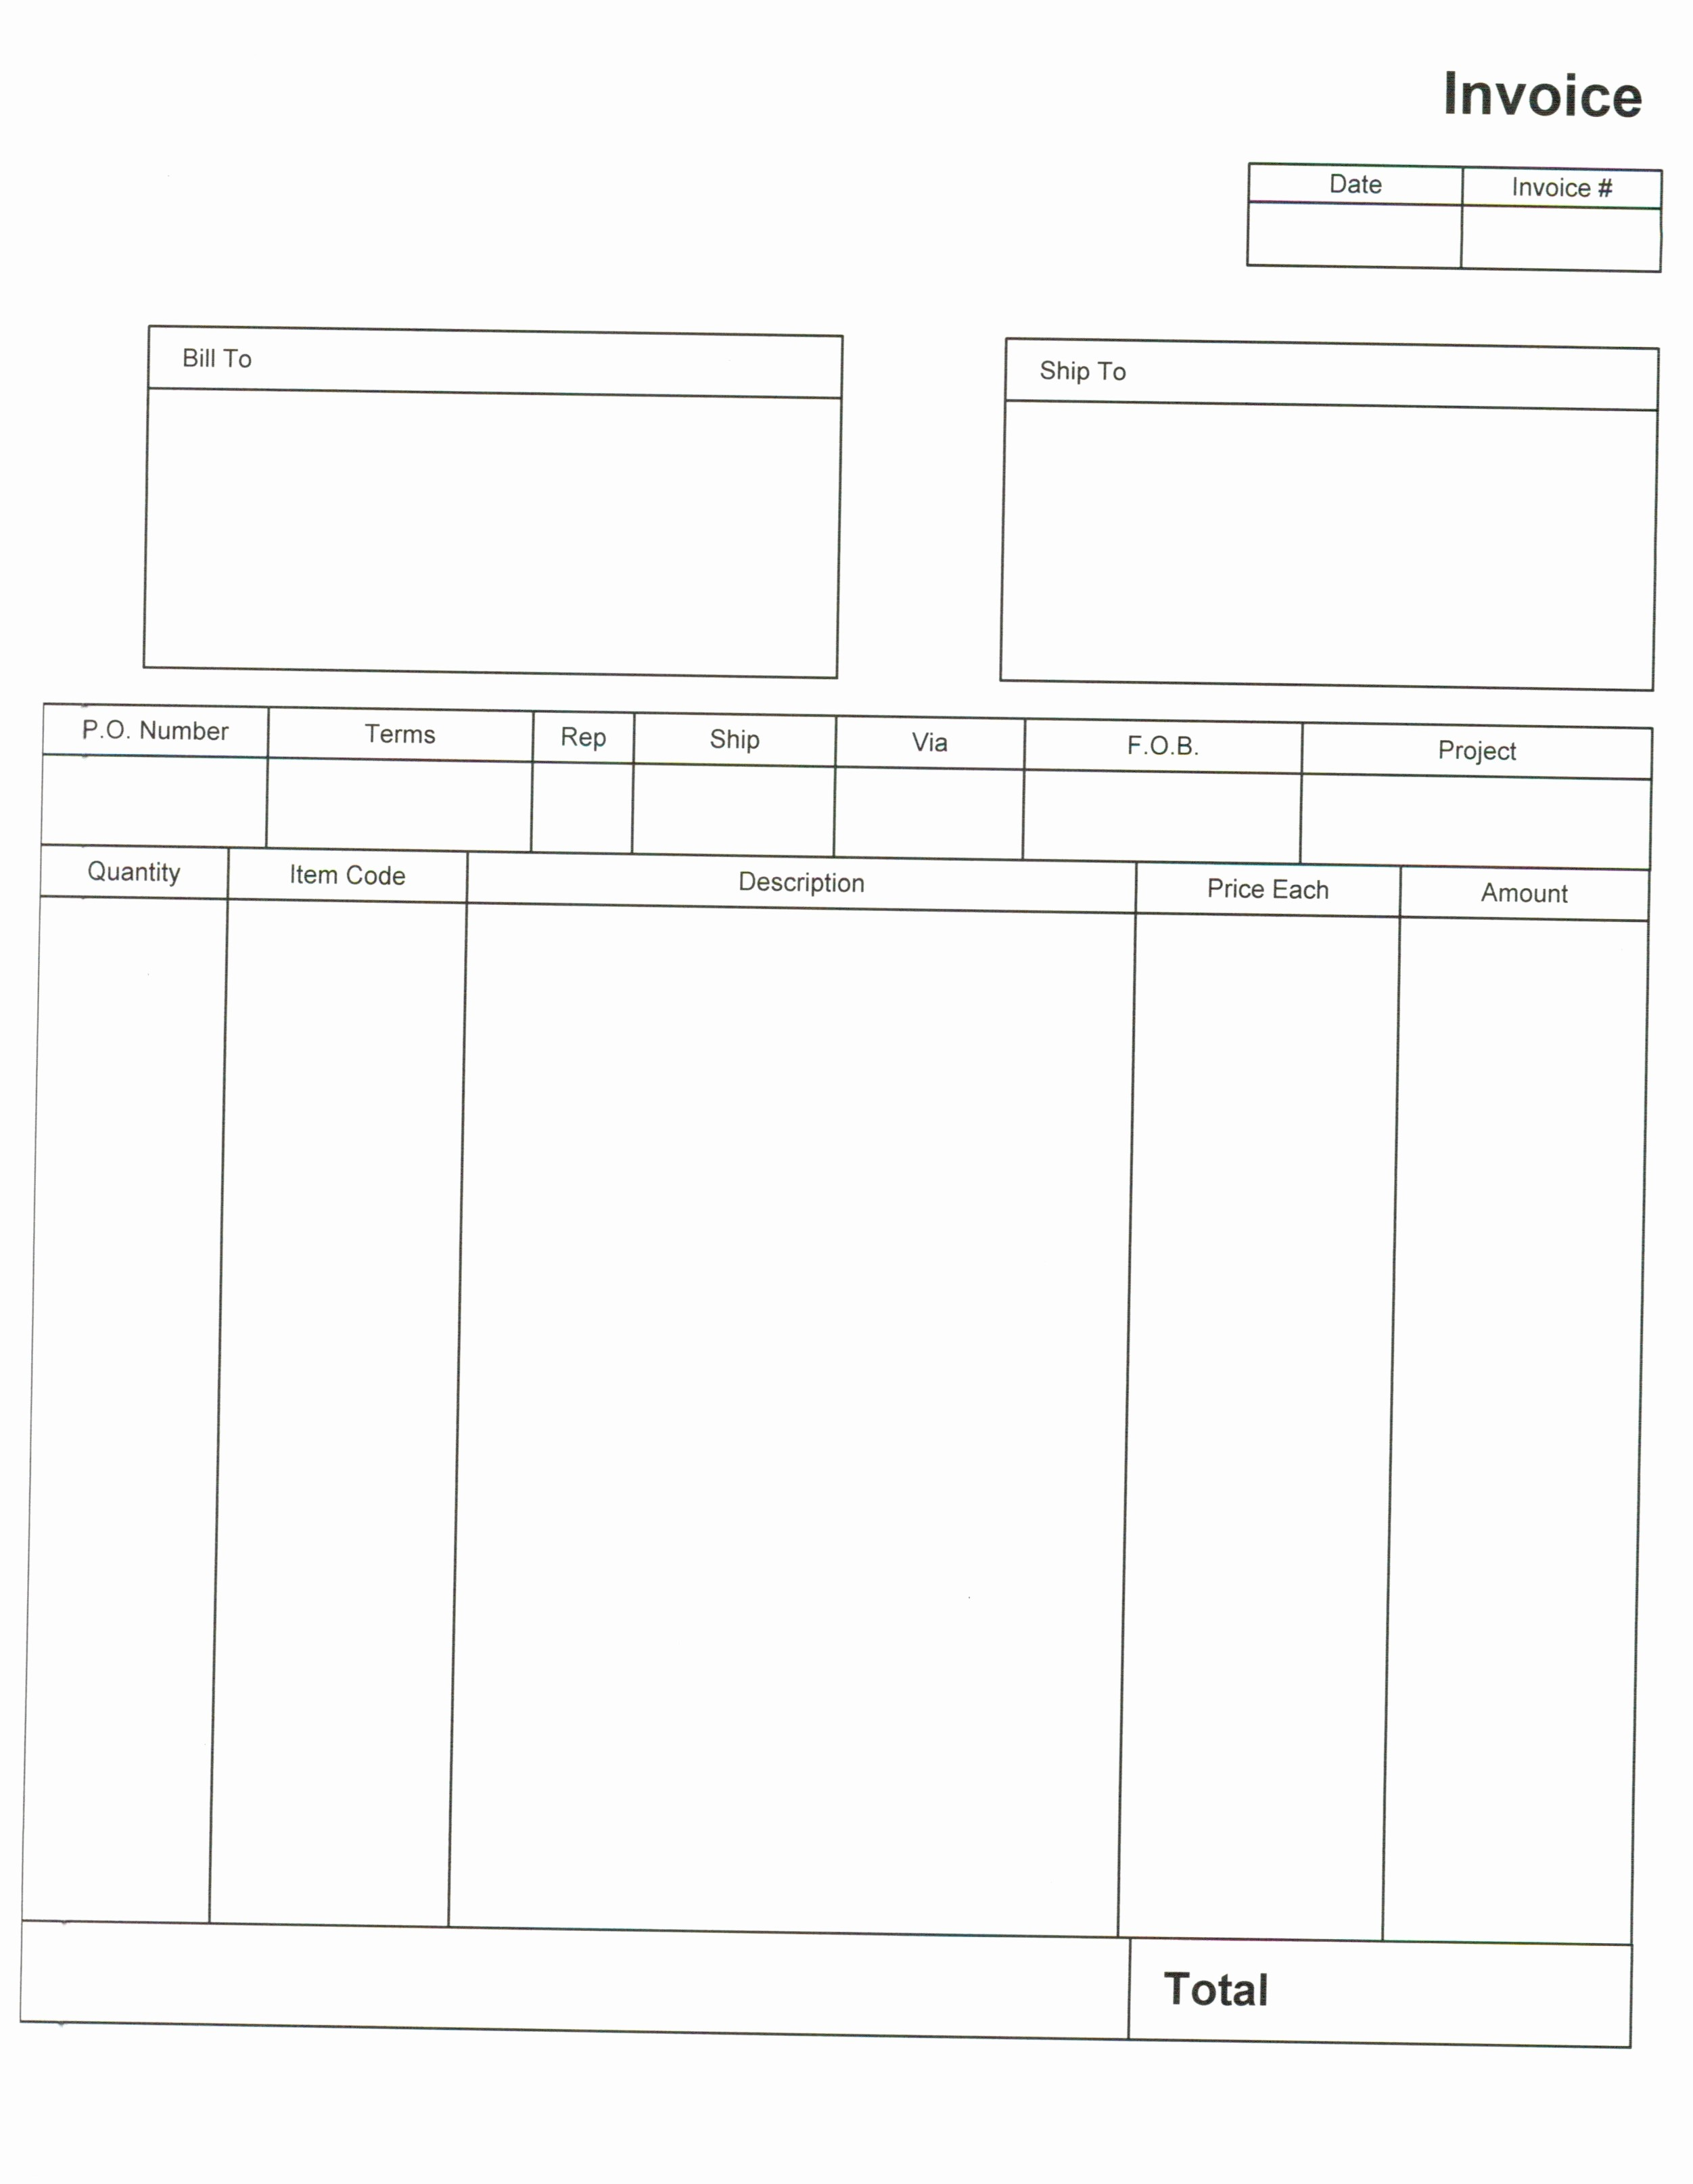 Free Templates for Invoices Printable Lovely Blank Invoices to Print Invoice Template Ideas